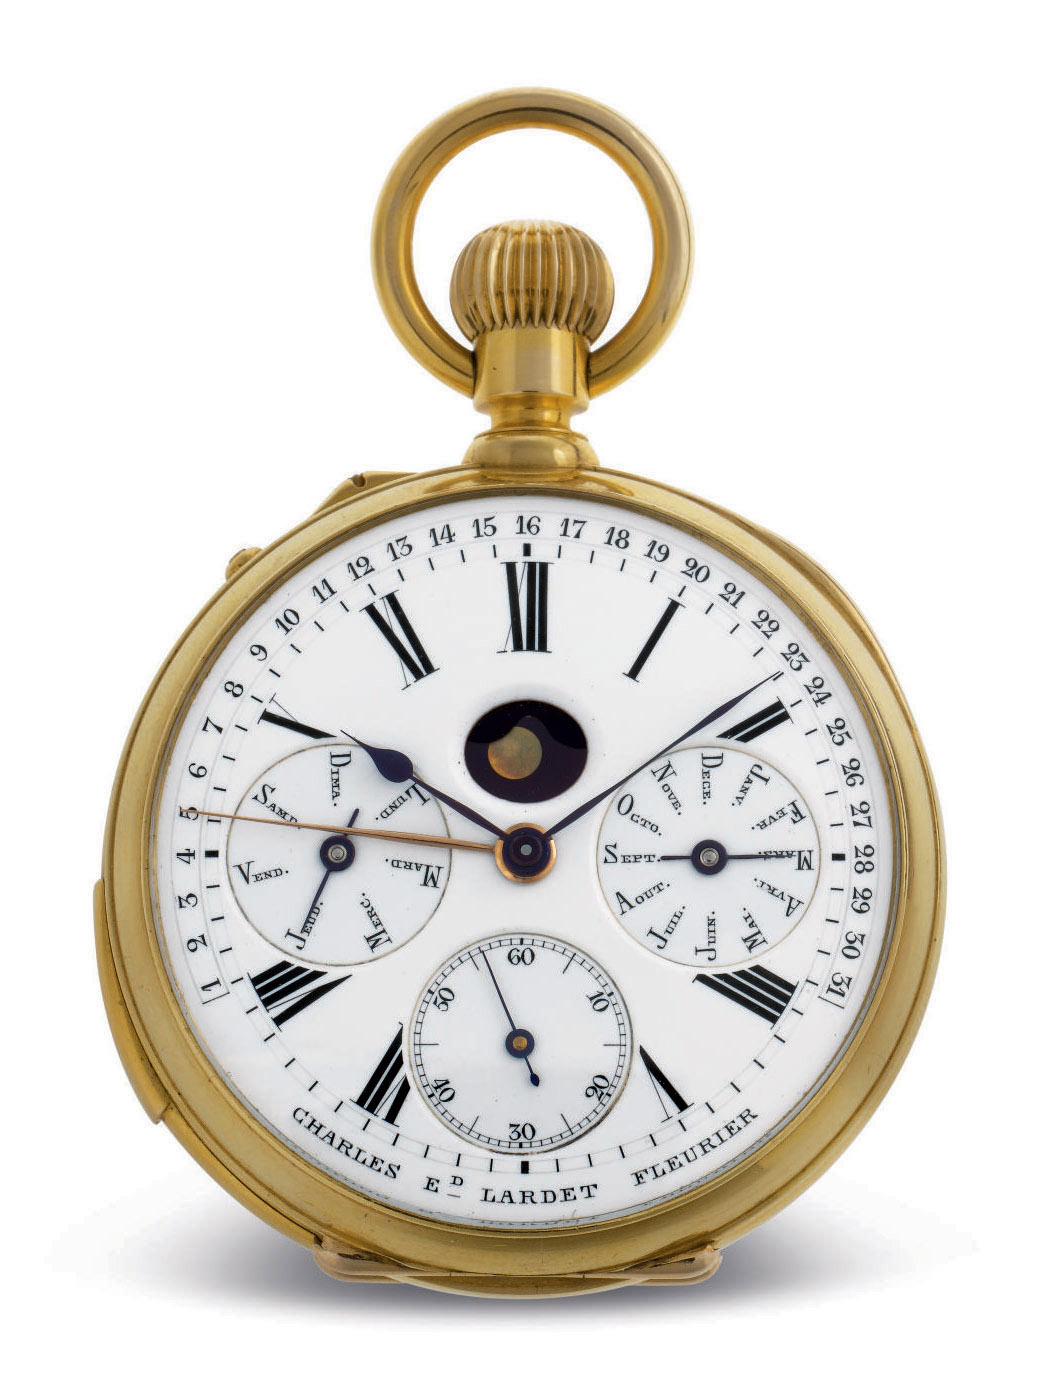 MARIUS LECOULTRE, MADE FOR CHARLES ED. LARDET. A VERY FINE AND UNUSUAL 18K GOLD OPENFACE MINUTE REPEATING PERPETUAL CALENDAR KEYLESS LEVER WATCH WITH PHASES OF THE MOON AND RETROGRADE DATE INDICATION